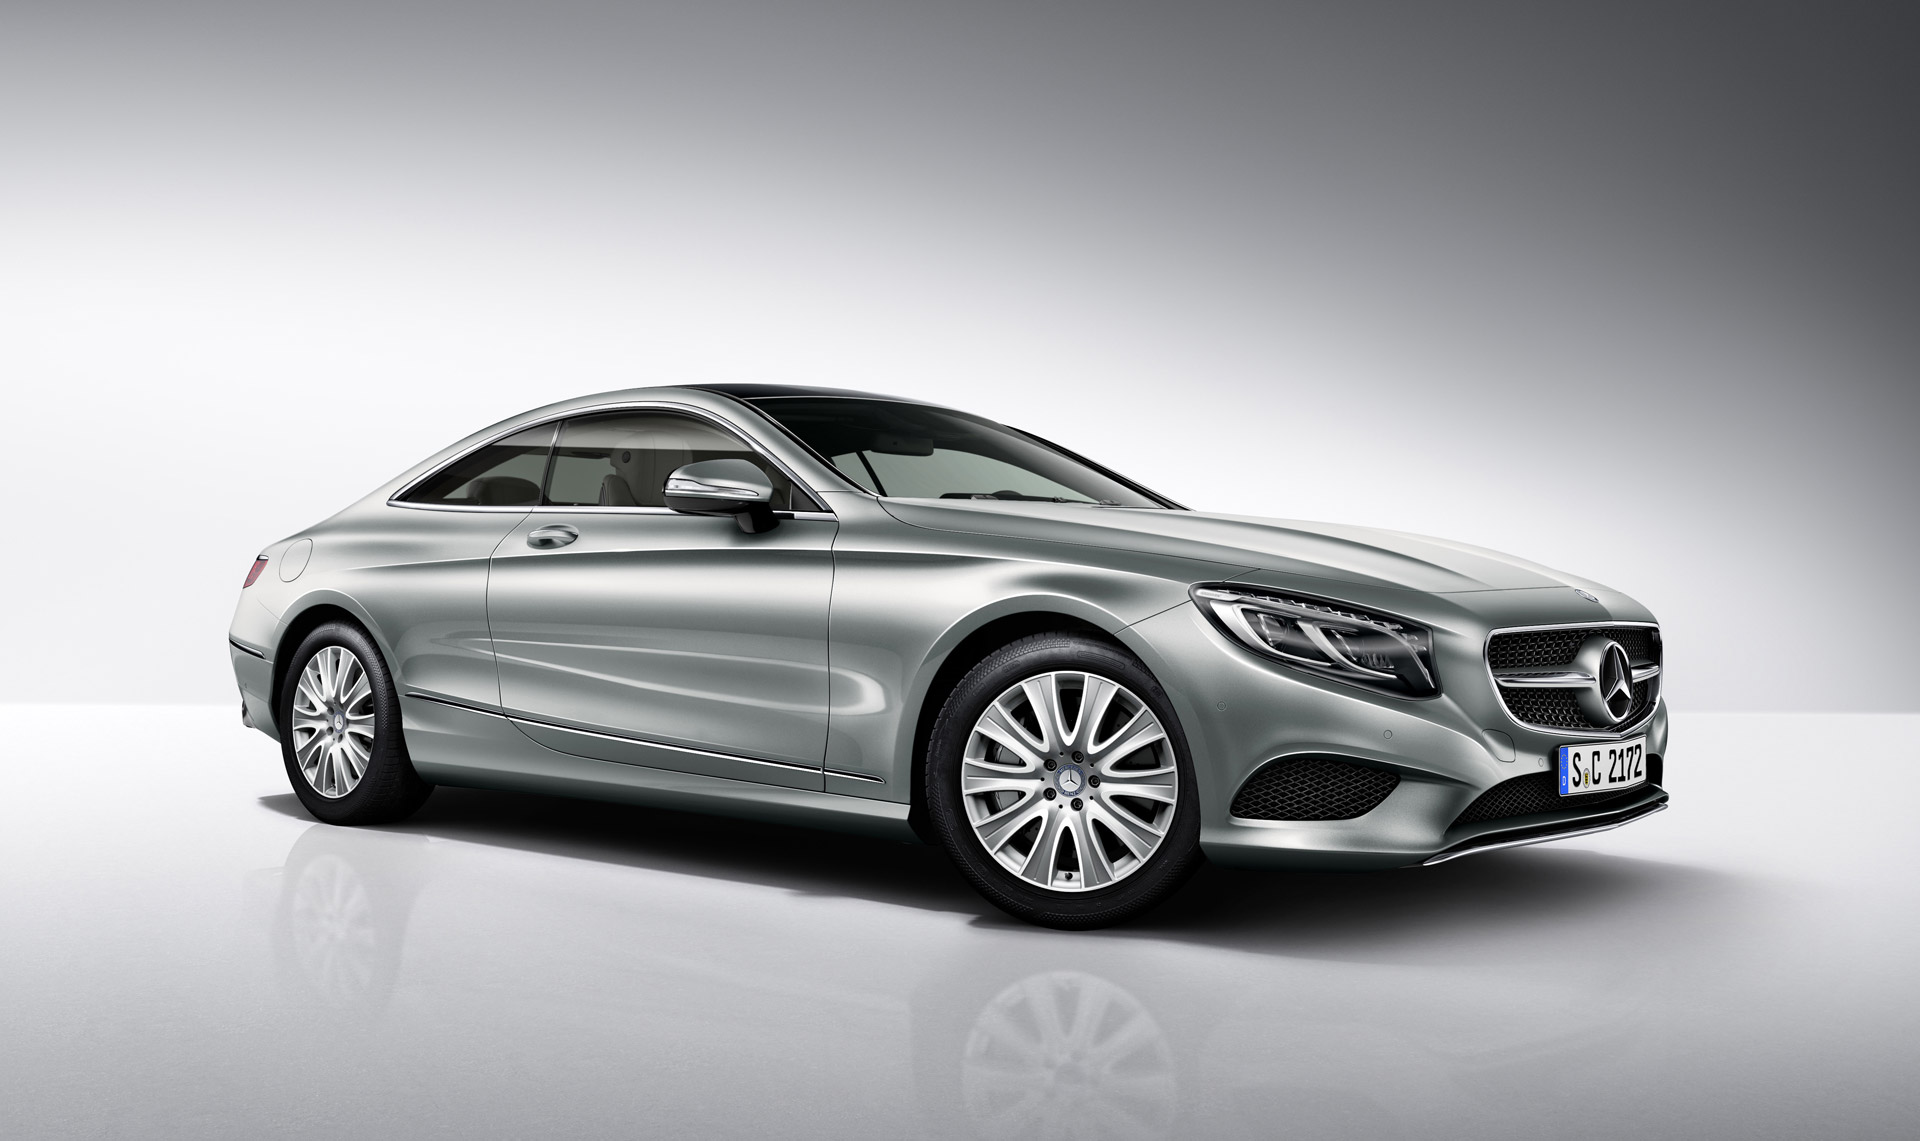 Mercedes benz adds s400 4matic model to s class coupe range for S coupe mercedes benz